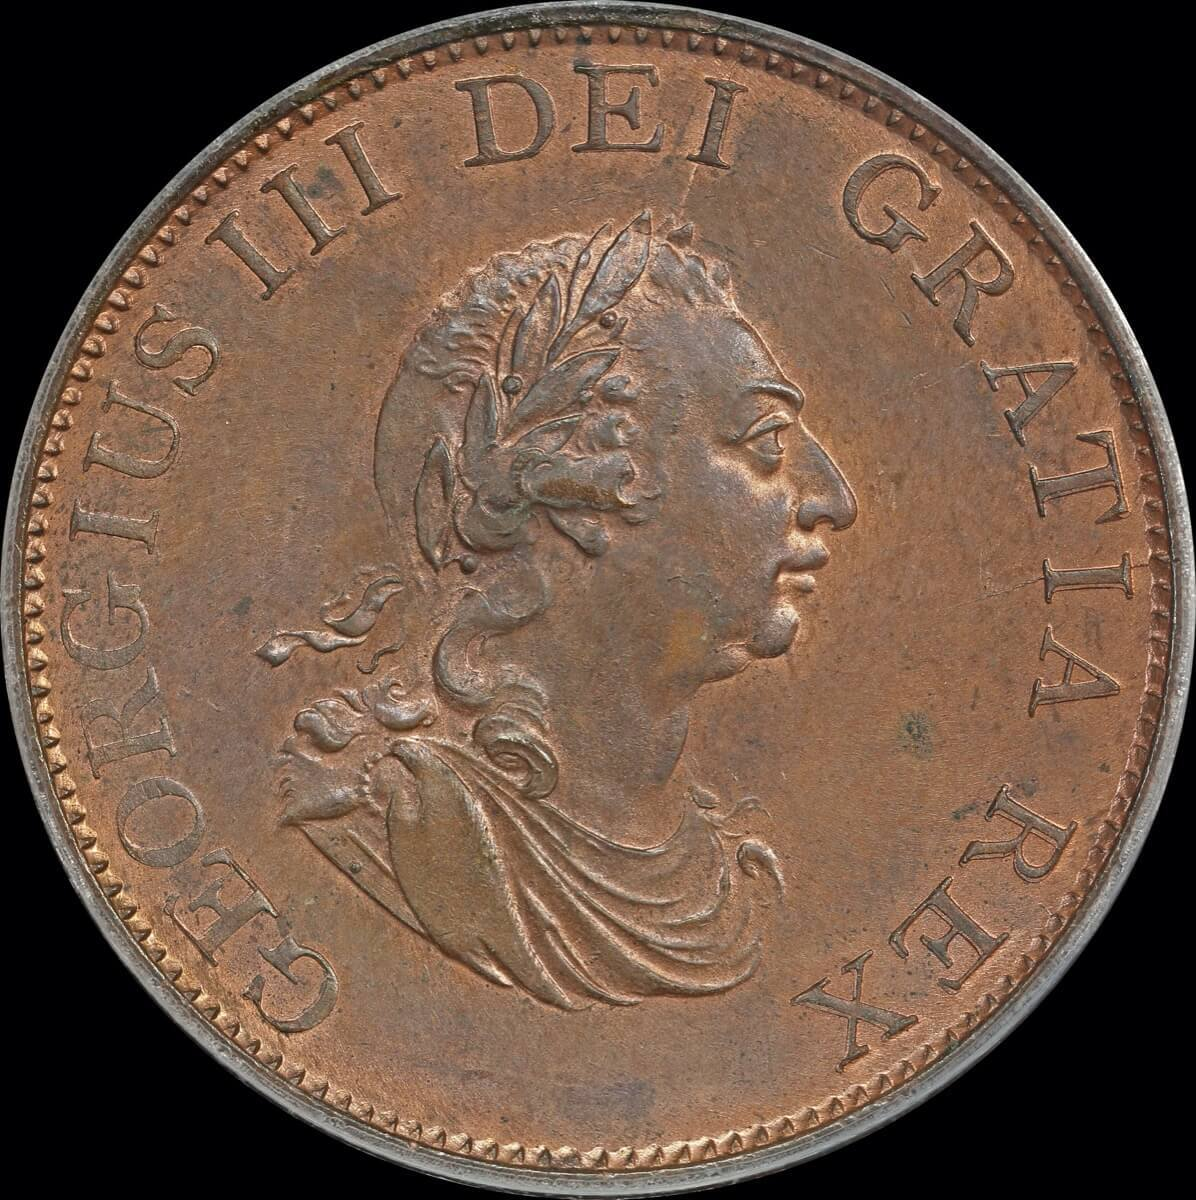 1799 Copper Halfpenny George III S# 3778 P MS64RB product image